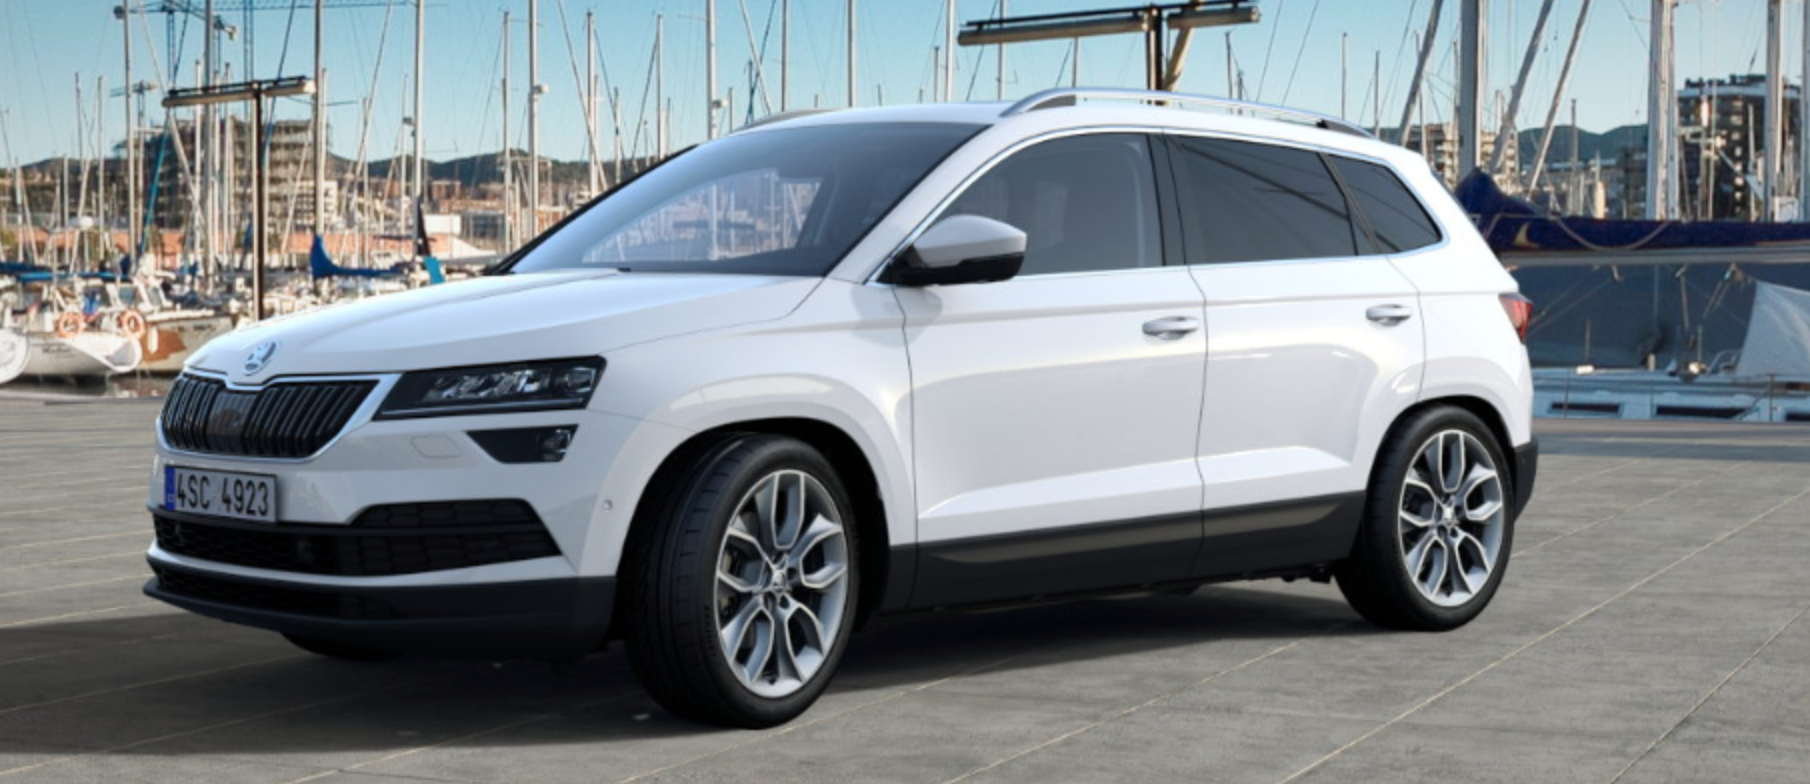 skoda karoq review carwow